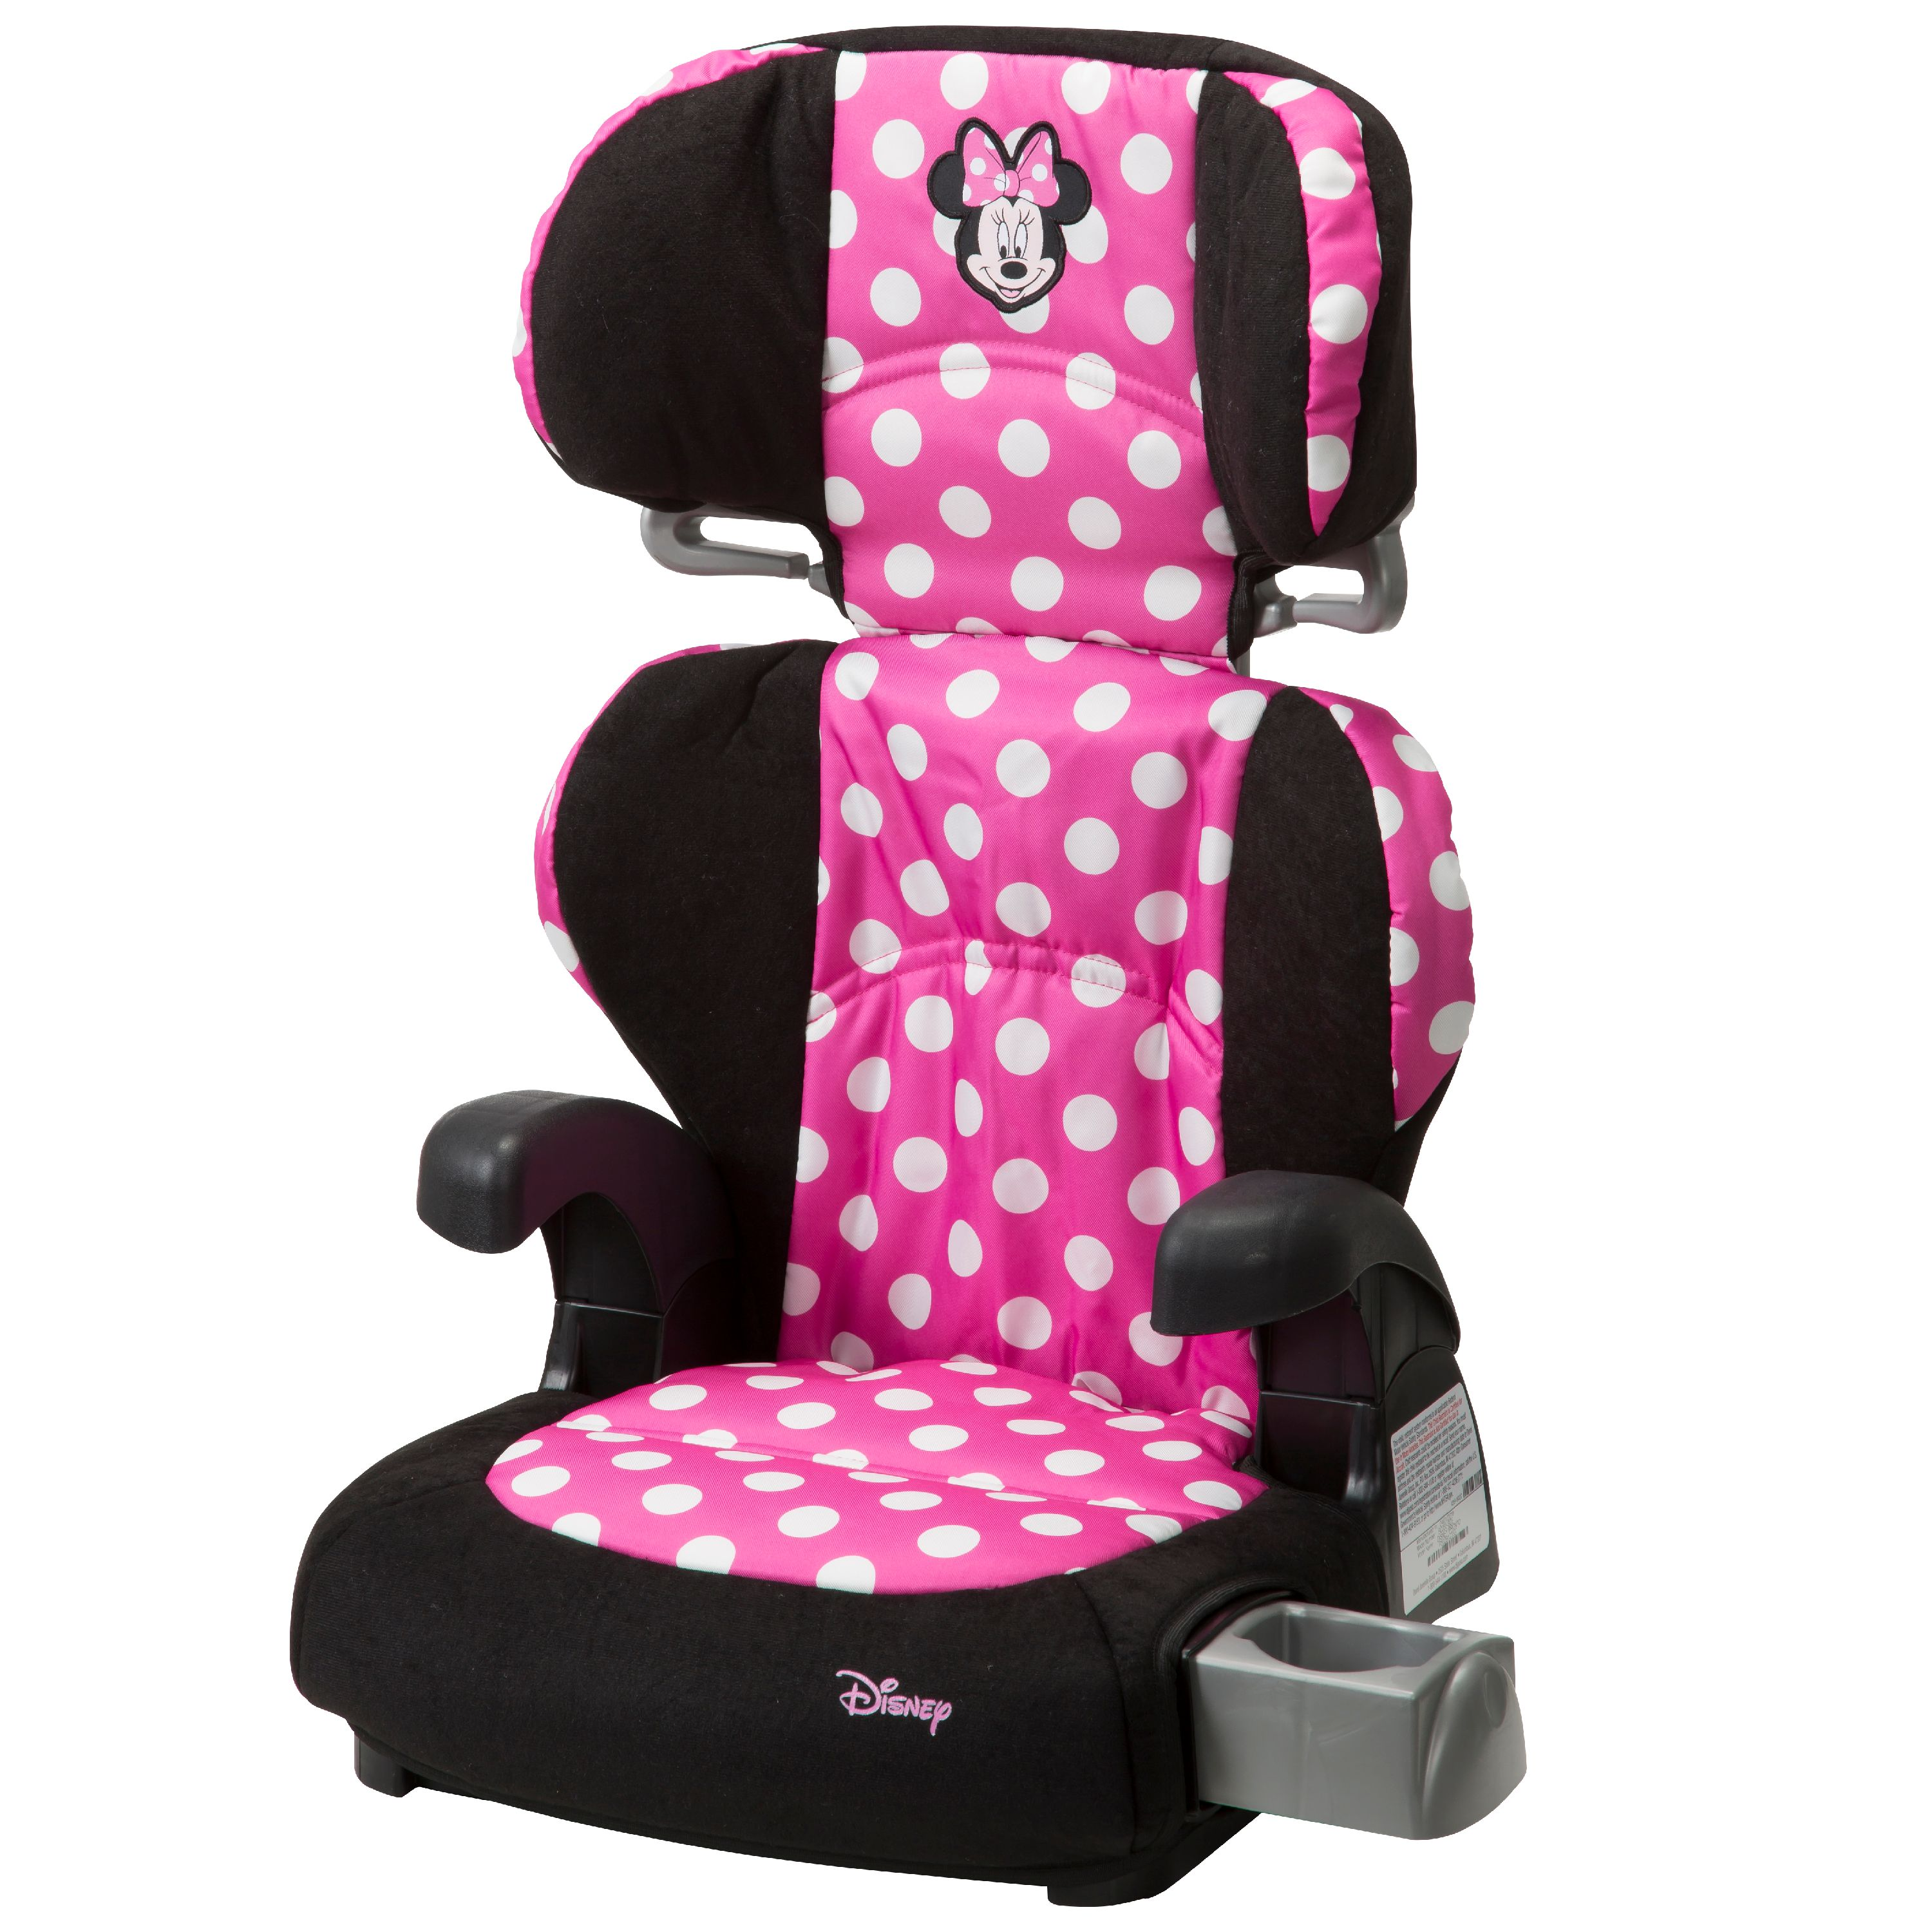 Minnie Mouse Car Seat Booster Chair Disney Combination Seat 5 Point Harness Girl